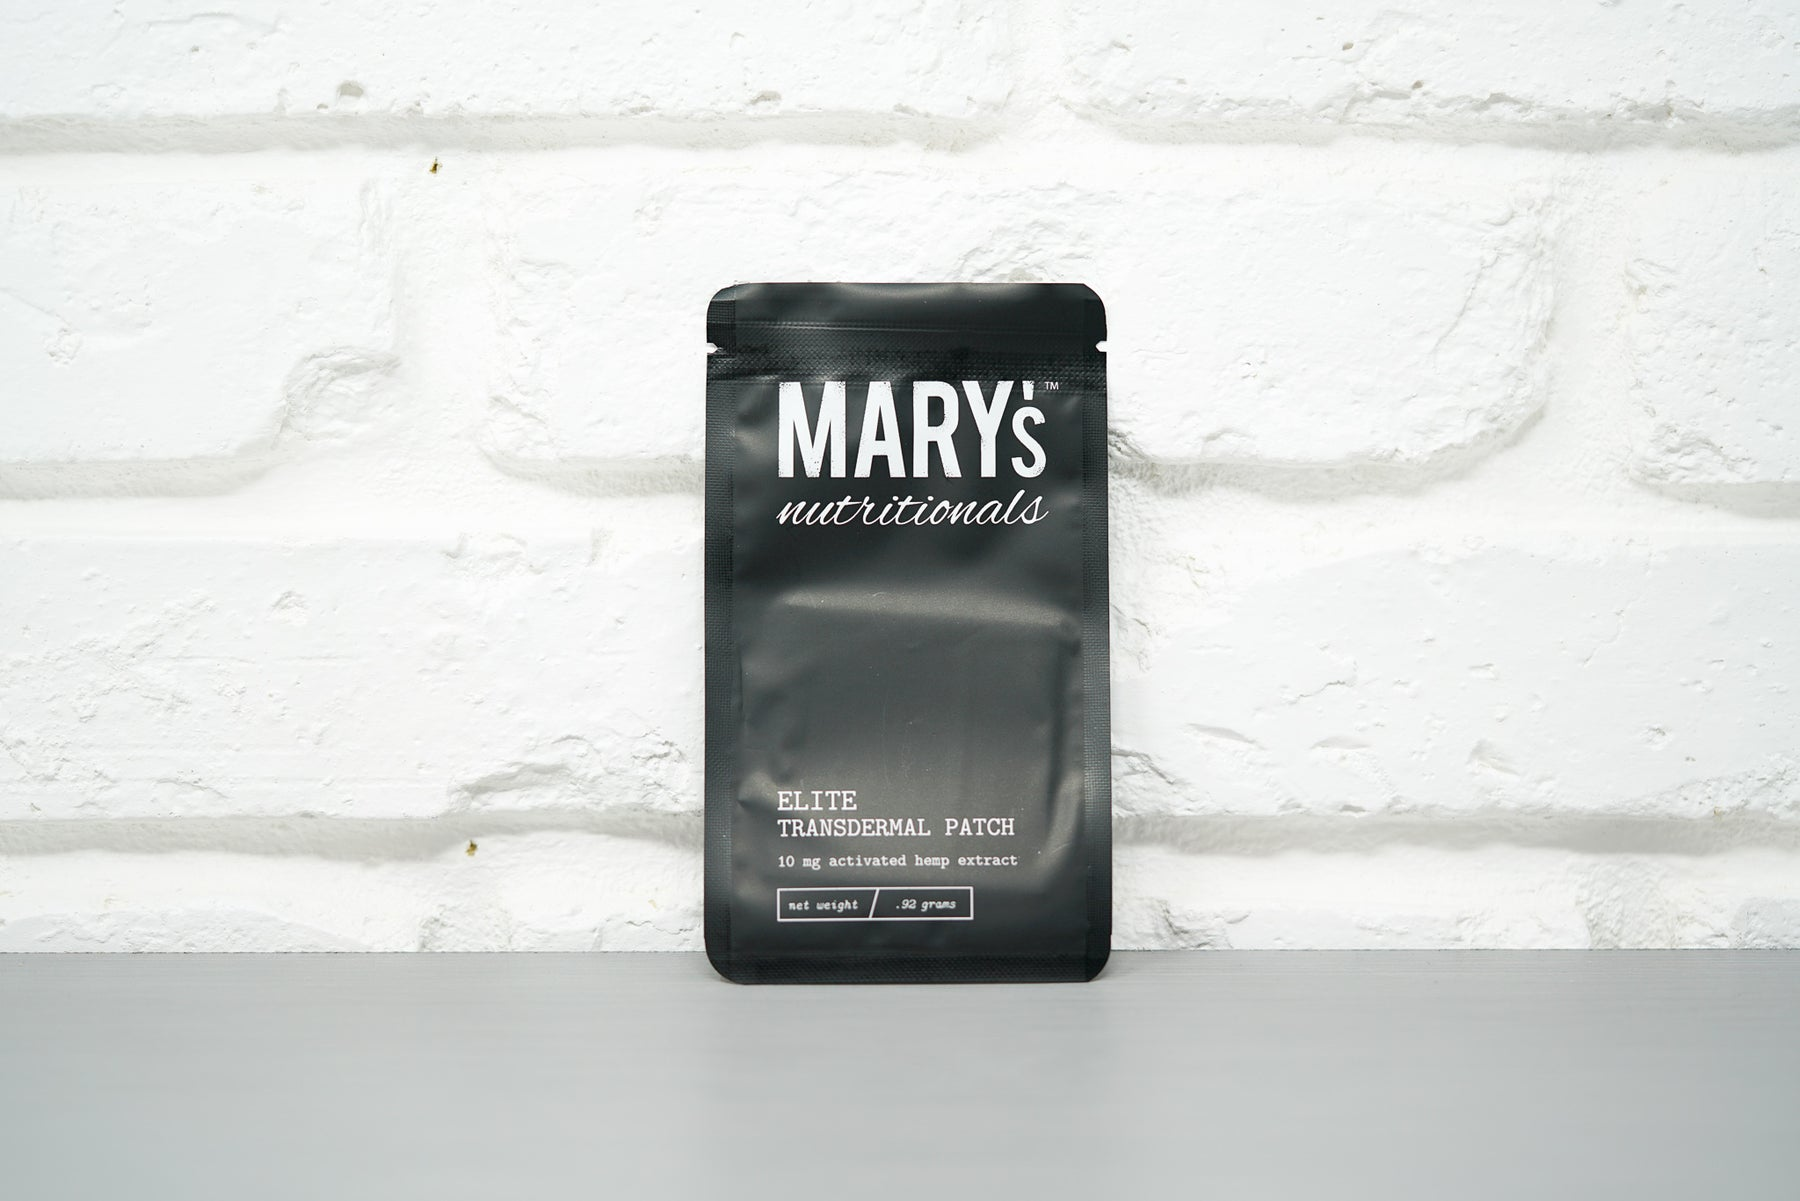 Mary's Nutritionals - Transdermal Patch